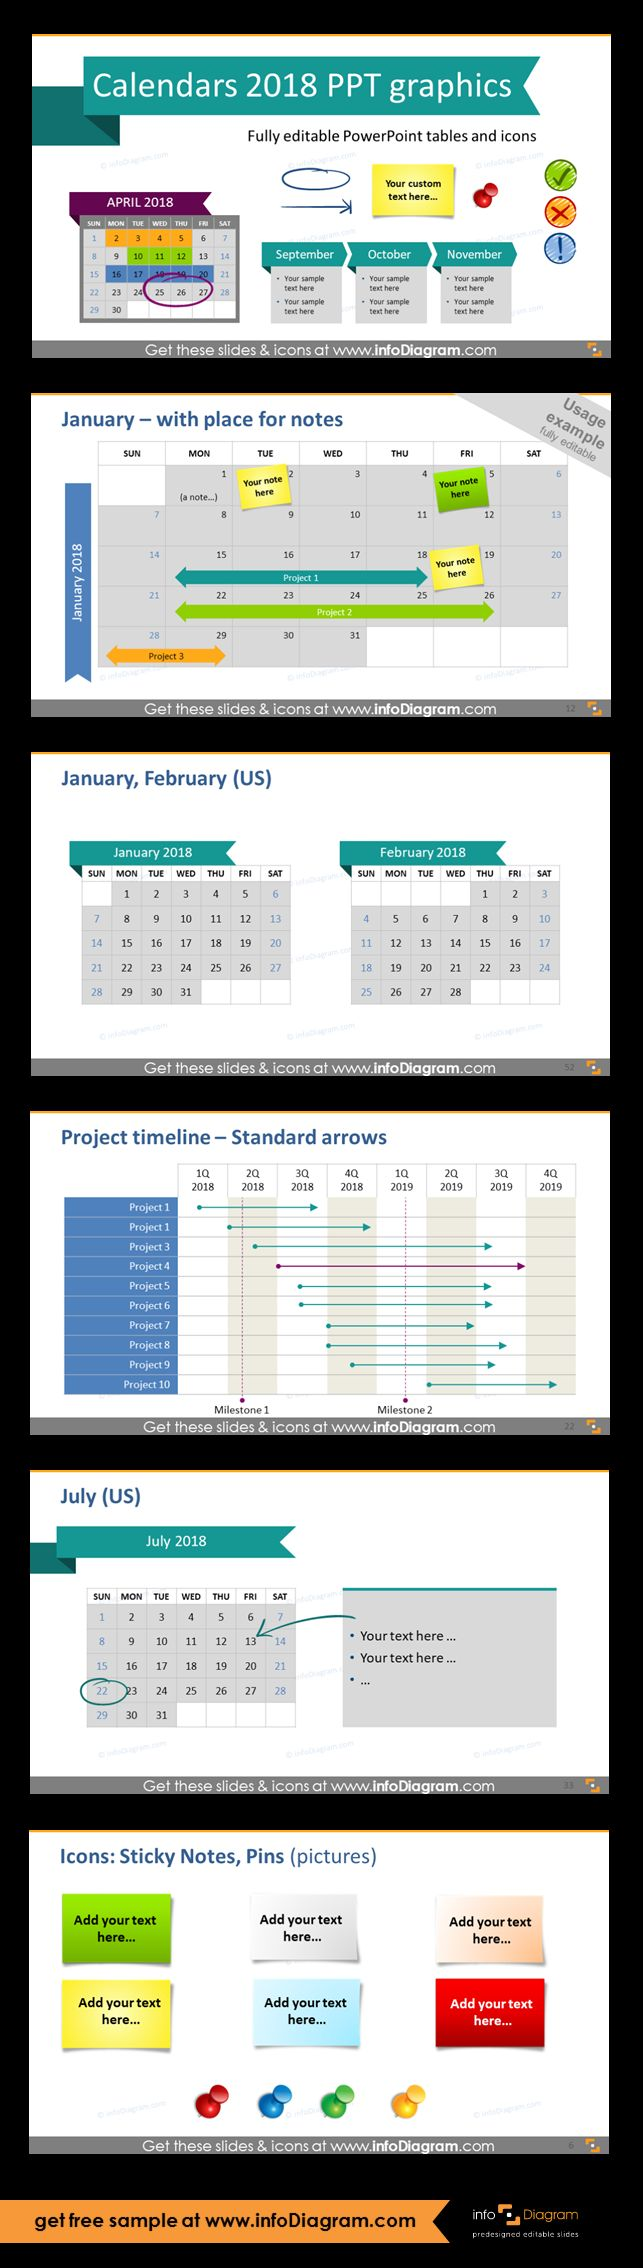 Predesigned 2018 Calendars and Timelines graphics editable in PowerPoint. Fully editable style, size and colors. Monthly calendars with weekdays with example of putting notes and projects, two months calendar format, project timeline table for marking start, end, duration of the tasks and projects Gantt charts, monthly calendar with place for description, sticky notes and pins icons set.